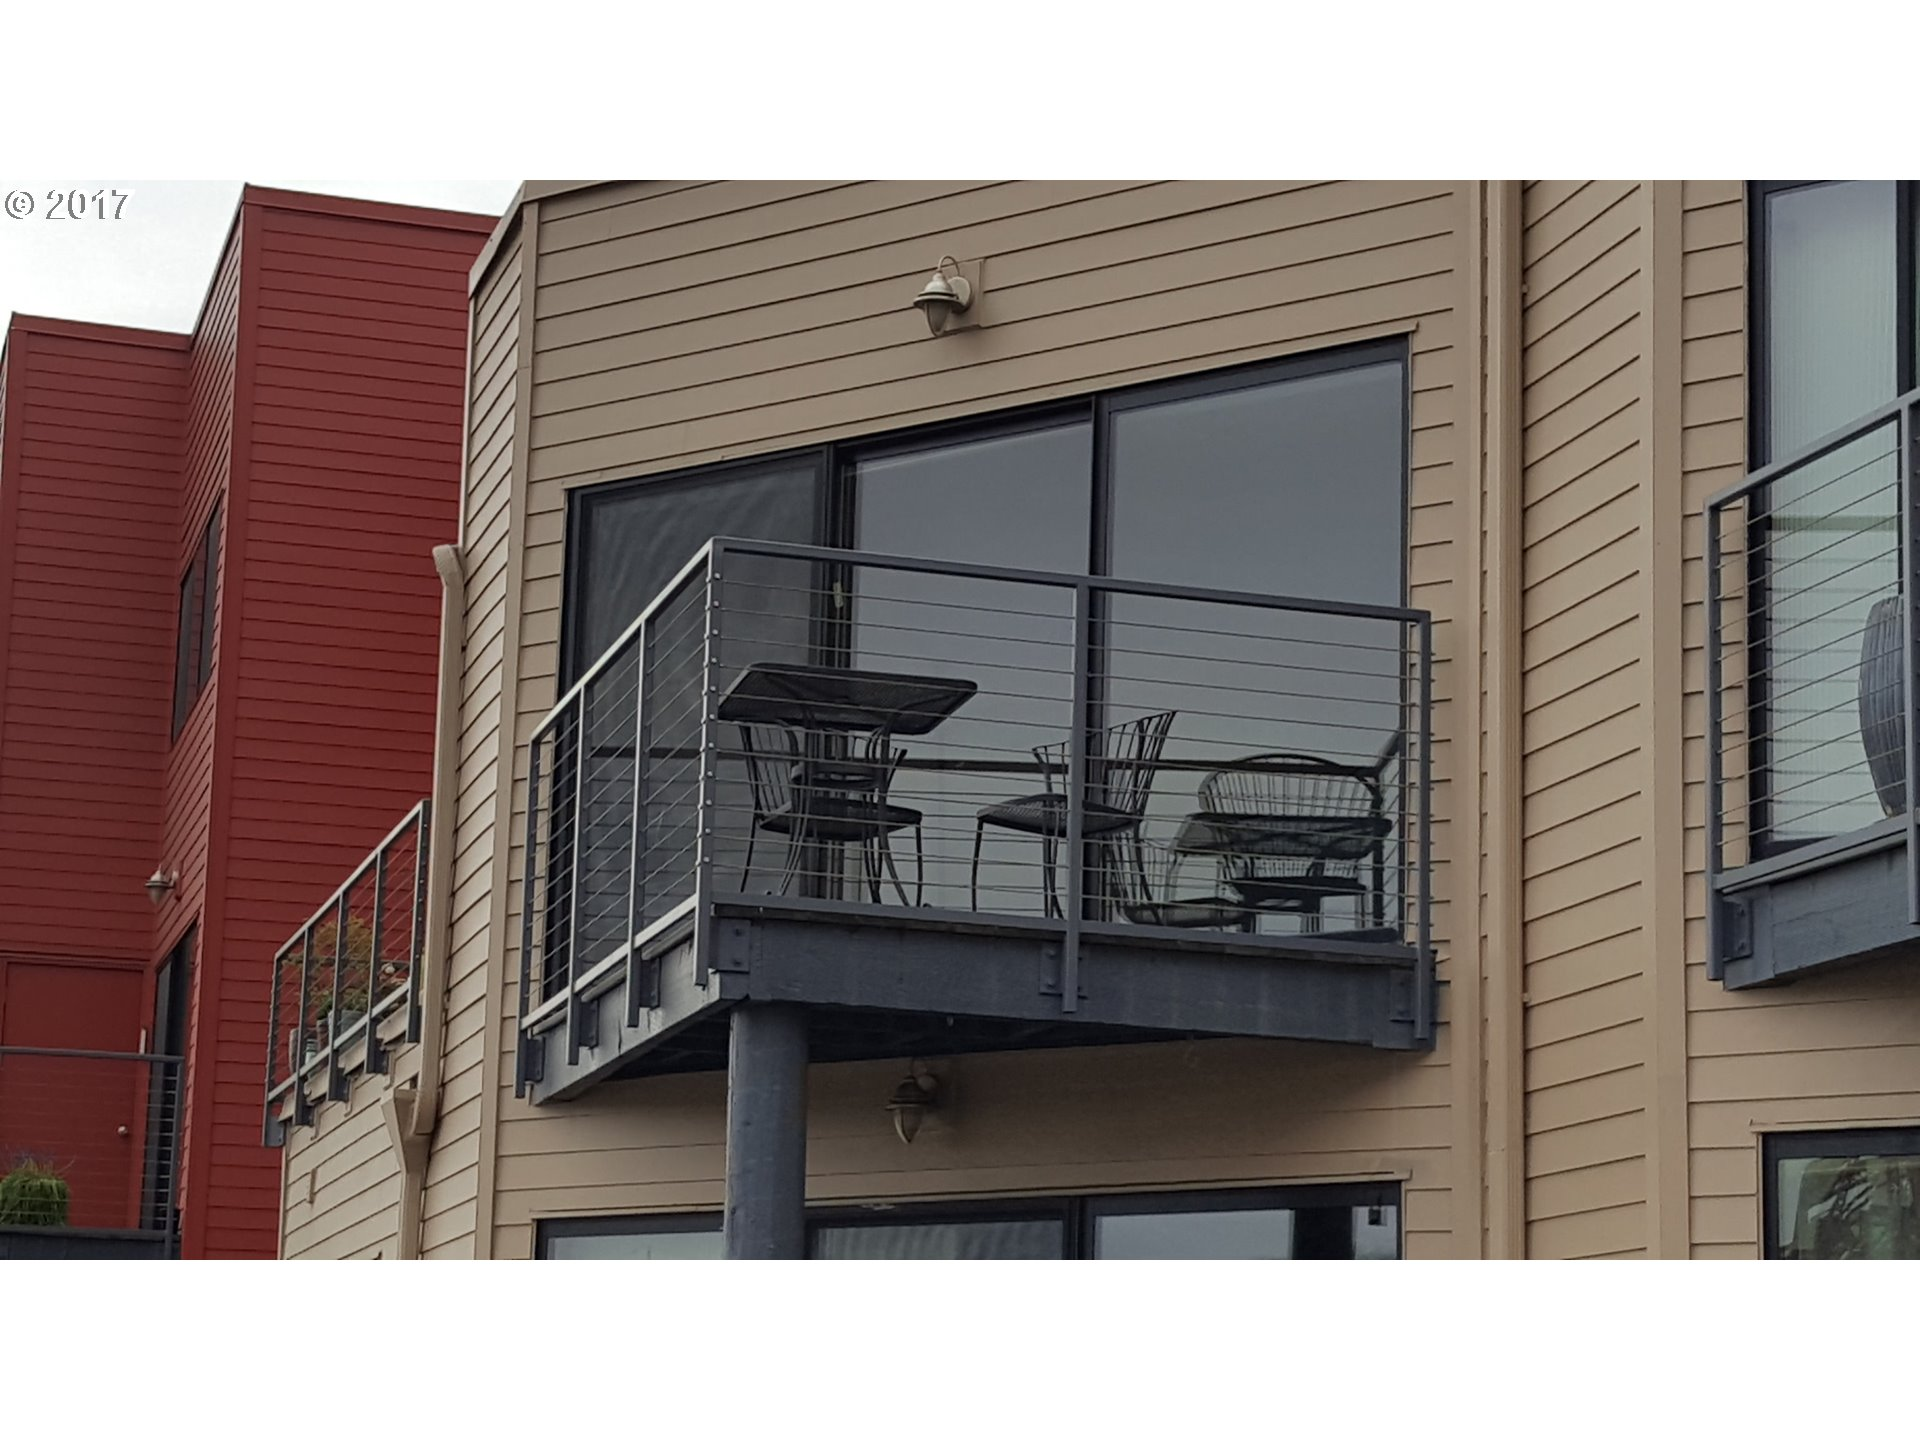 756 sq. ft 1 bedrooms 1 bathrooms  House ,Portland, OR